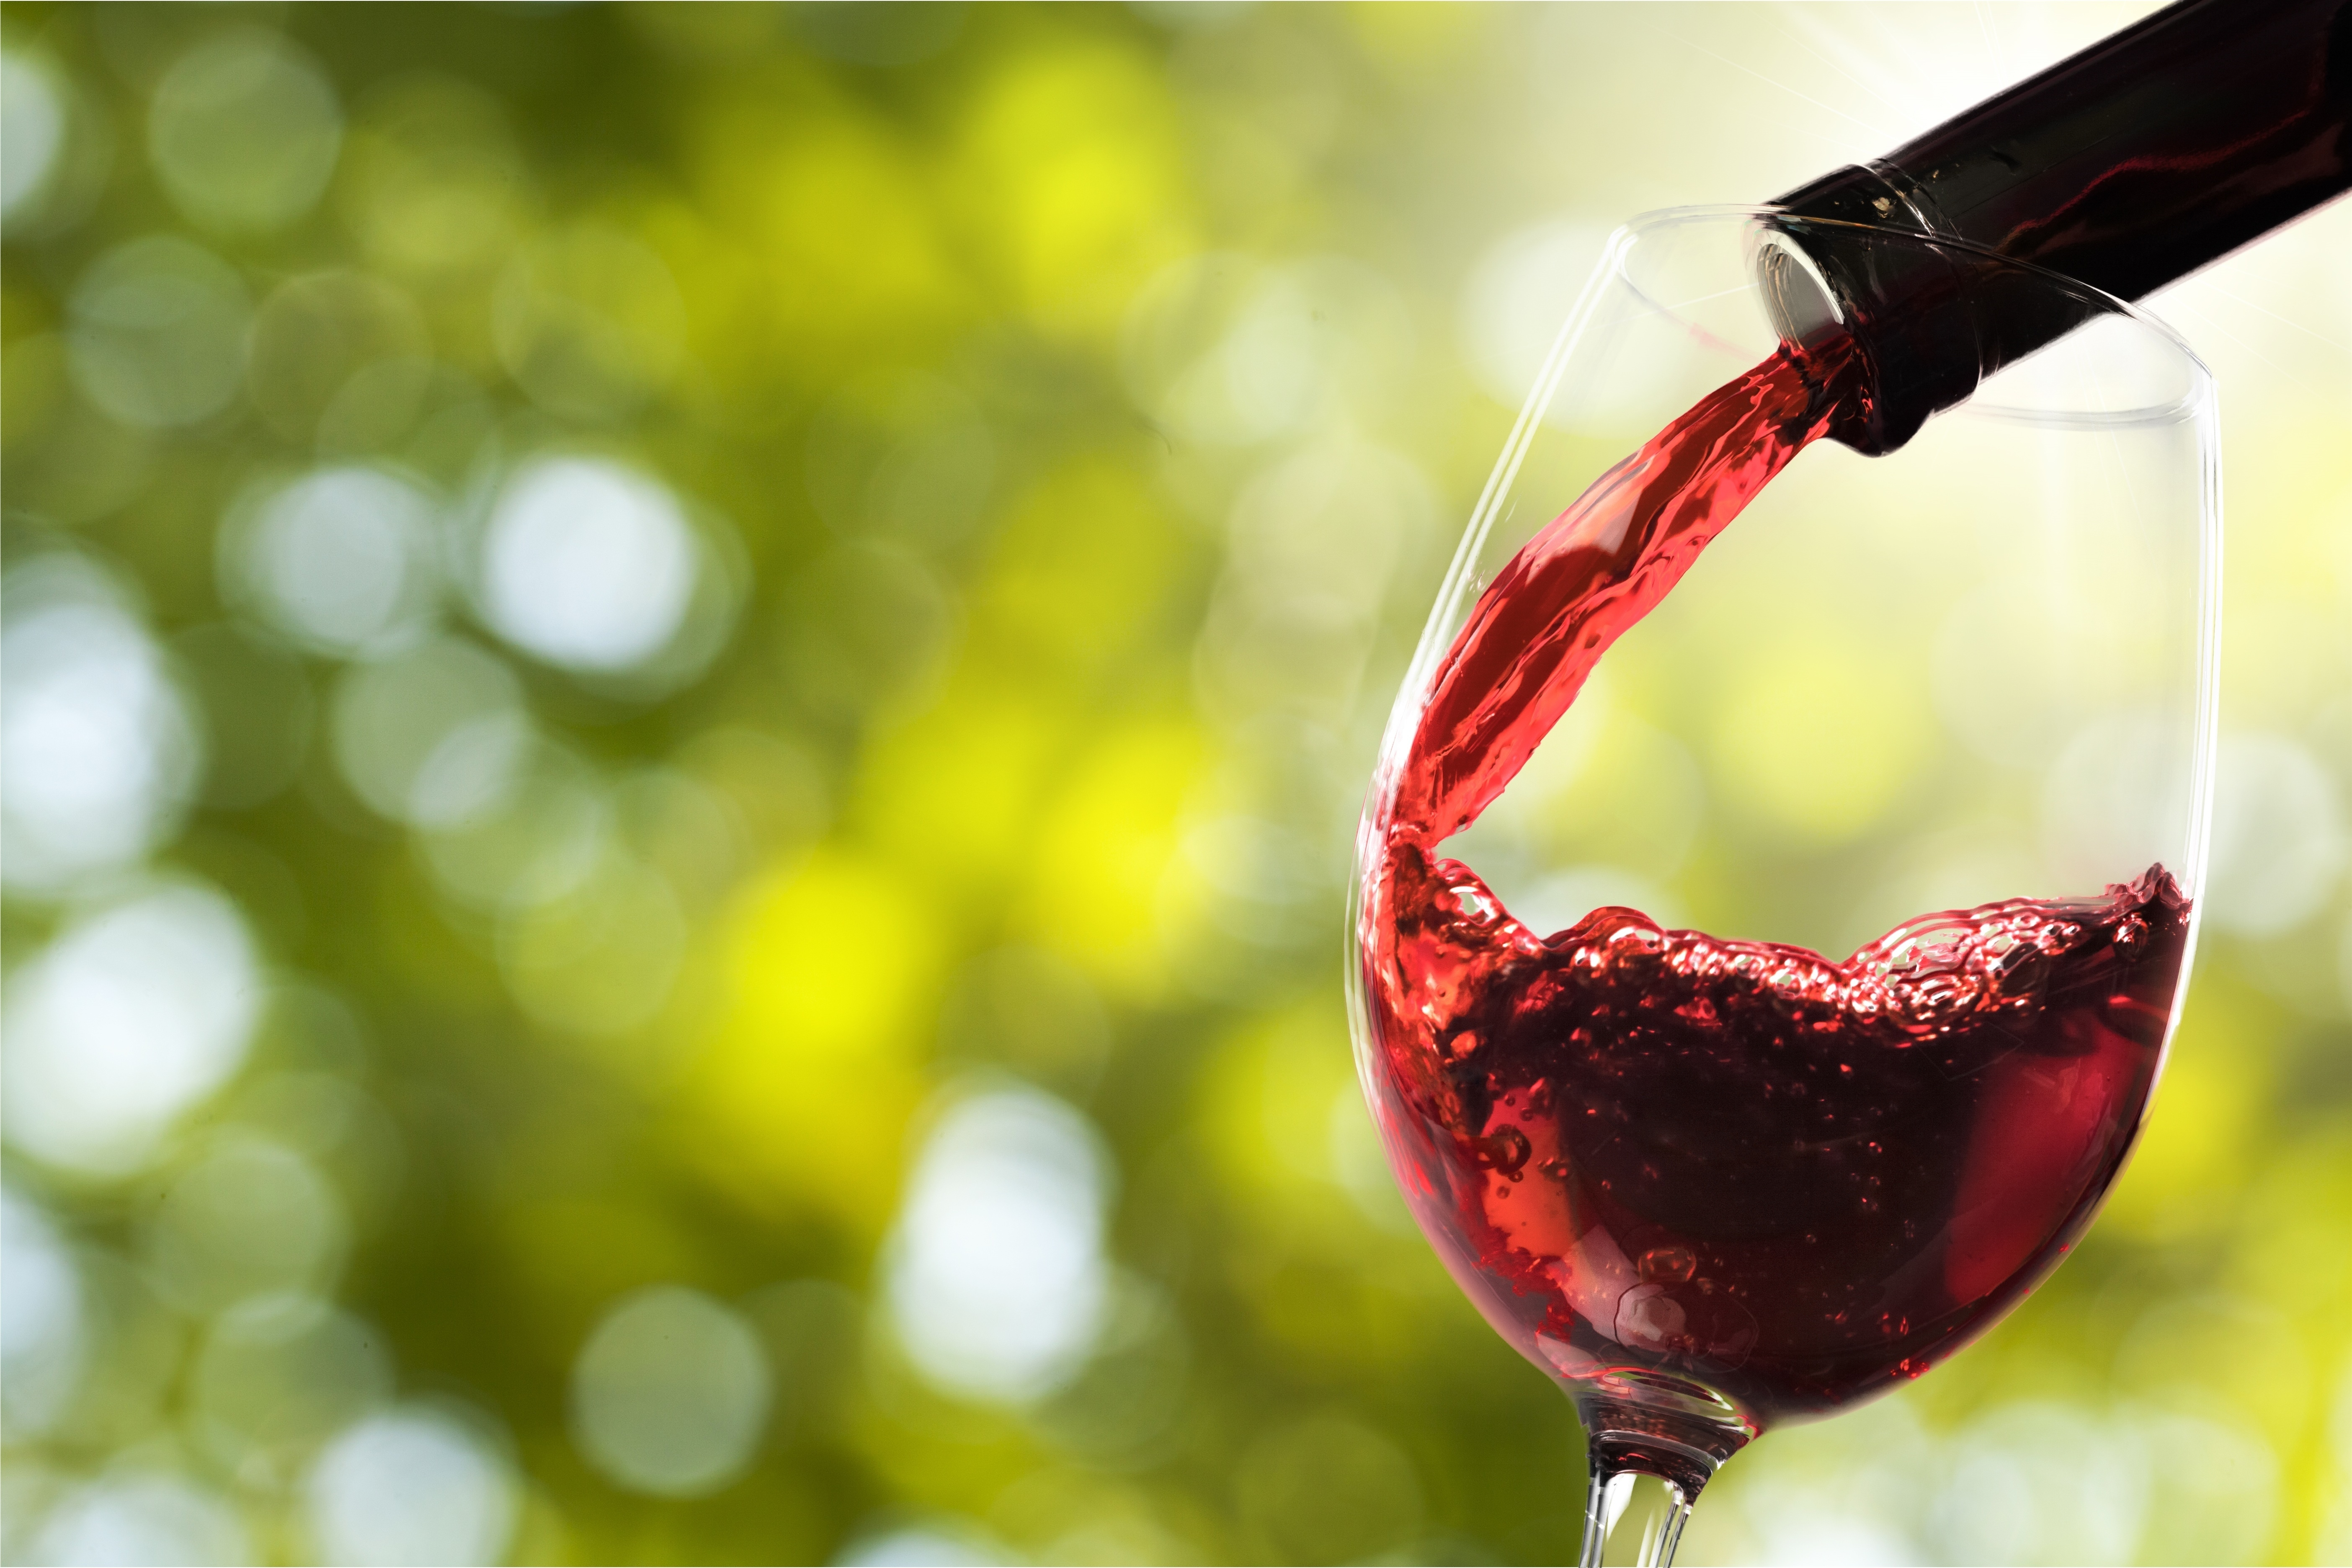 Red wine with a background of greenery